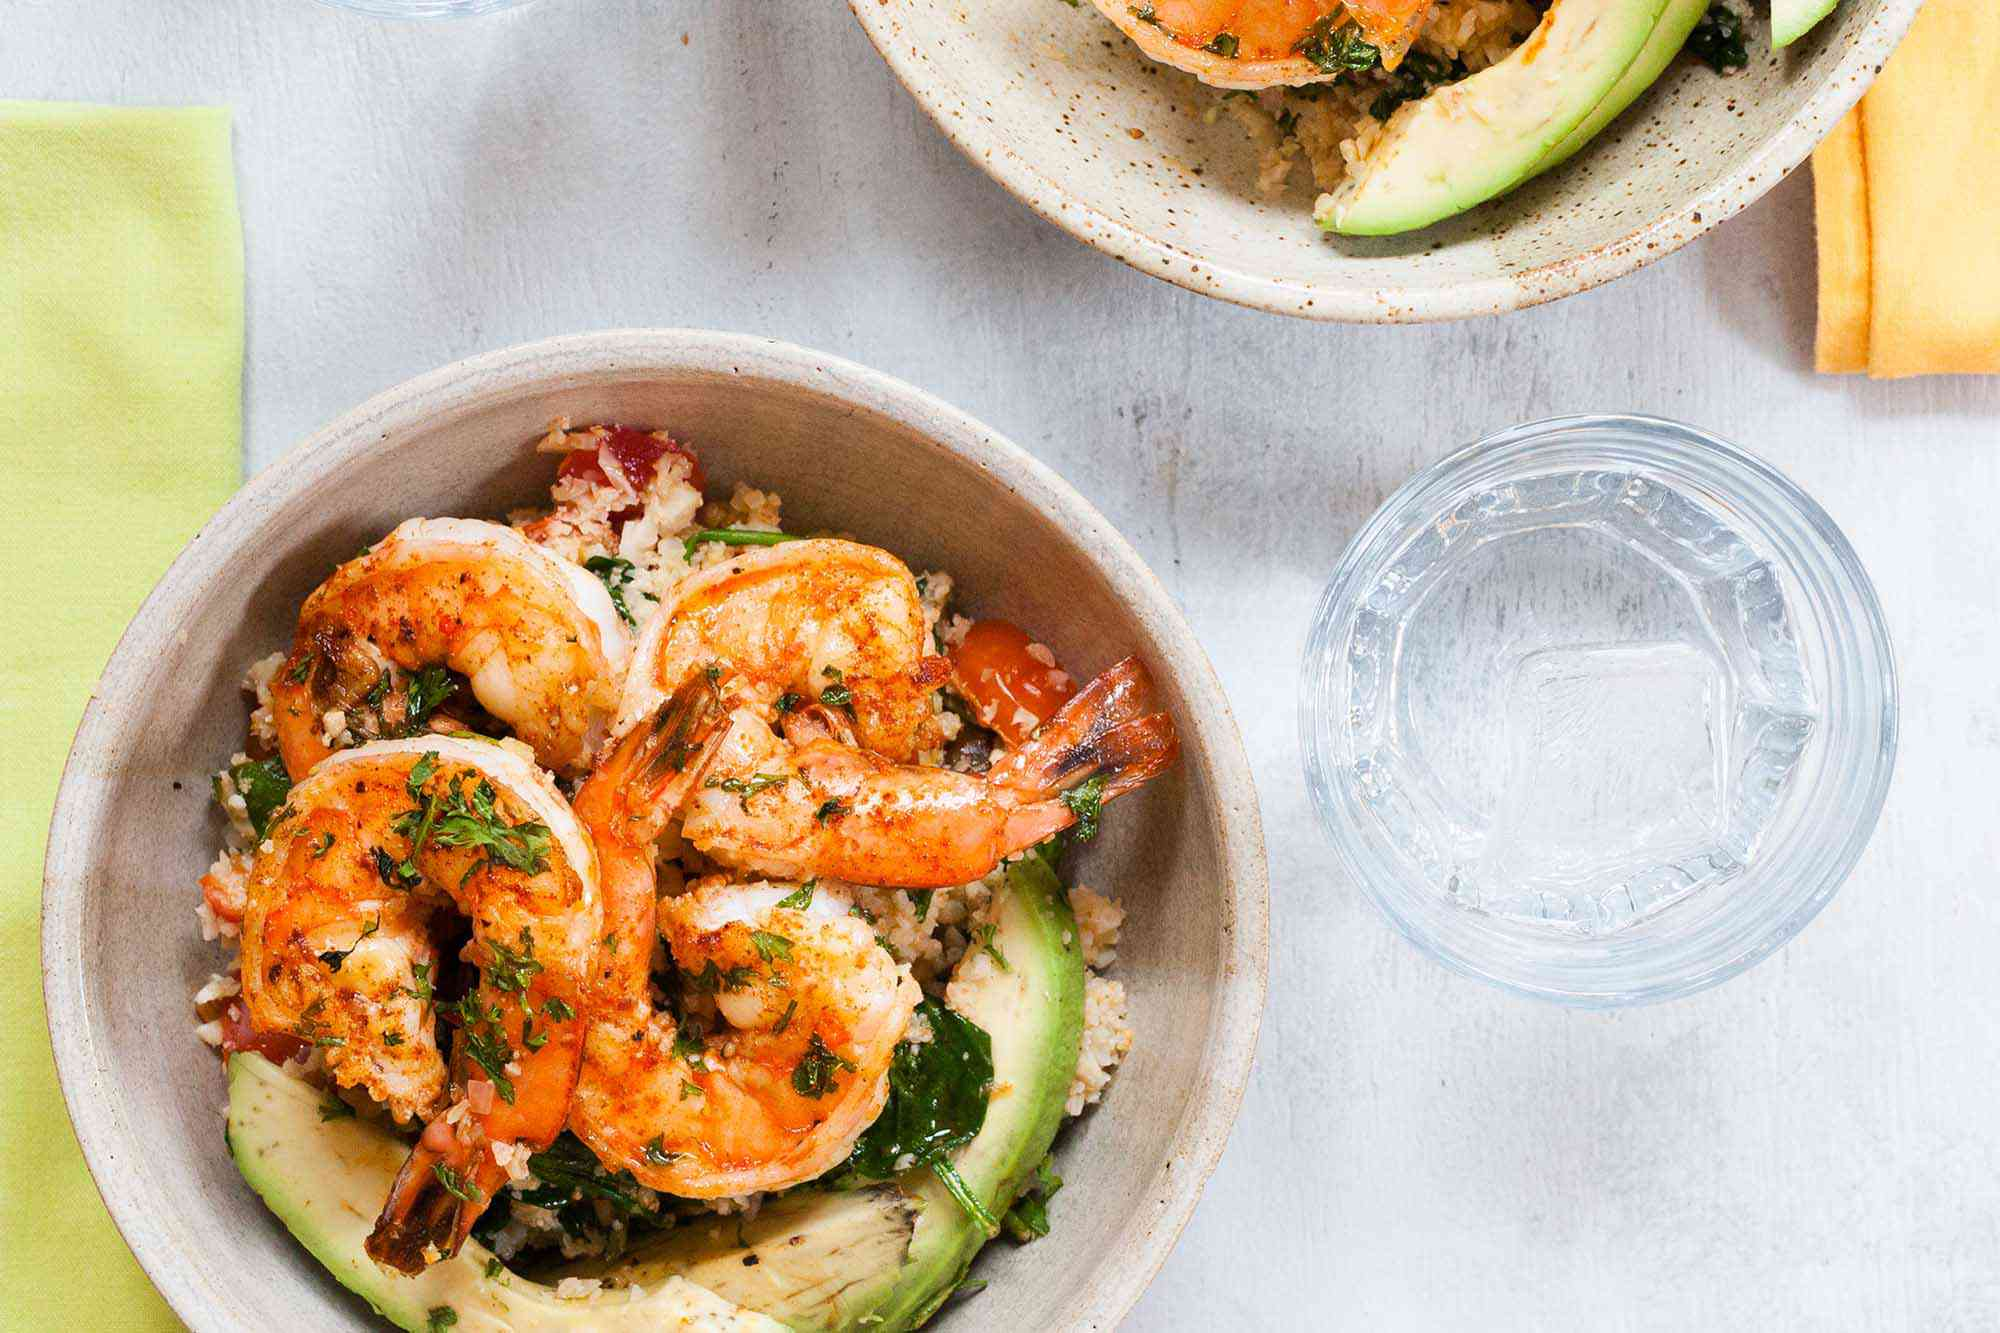 A horizontal poto of cauliflower rice and shrimp. A green napkin is to the left and a water glass to the right. Above the glass is a second bowl in partial view.